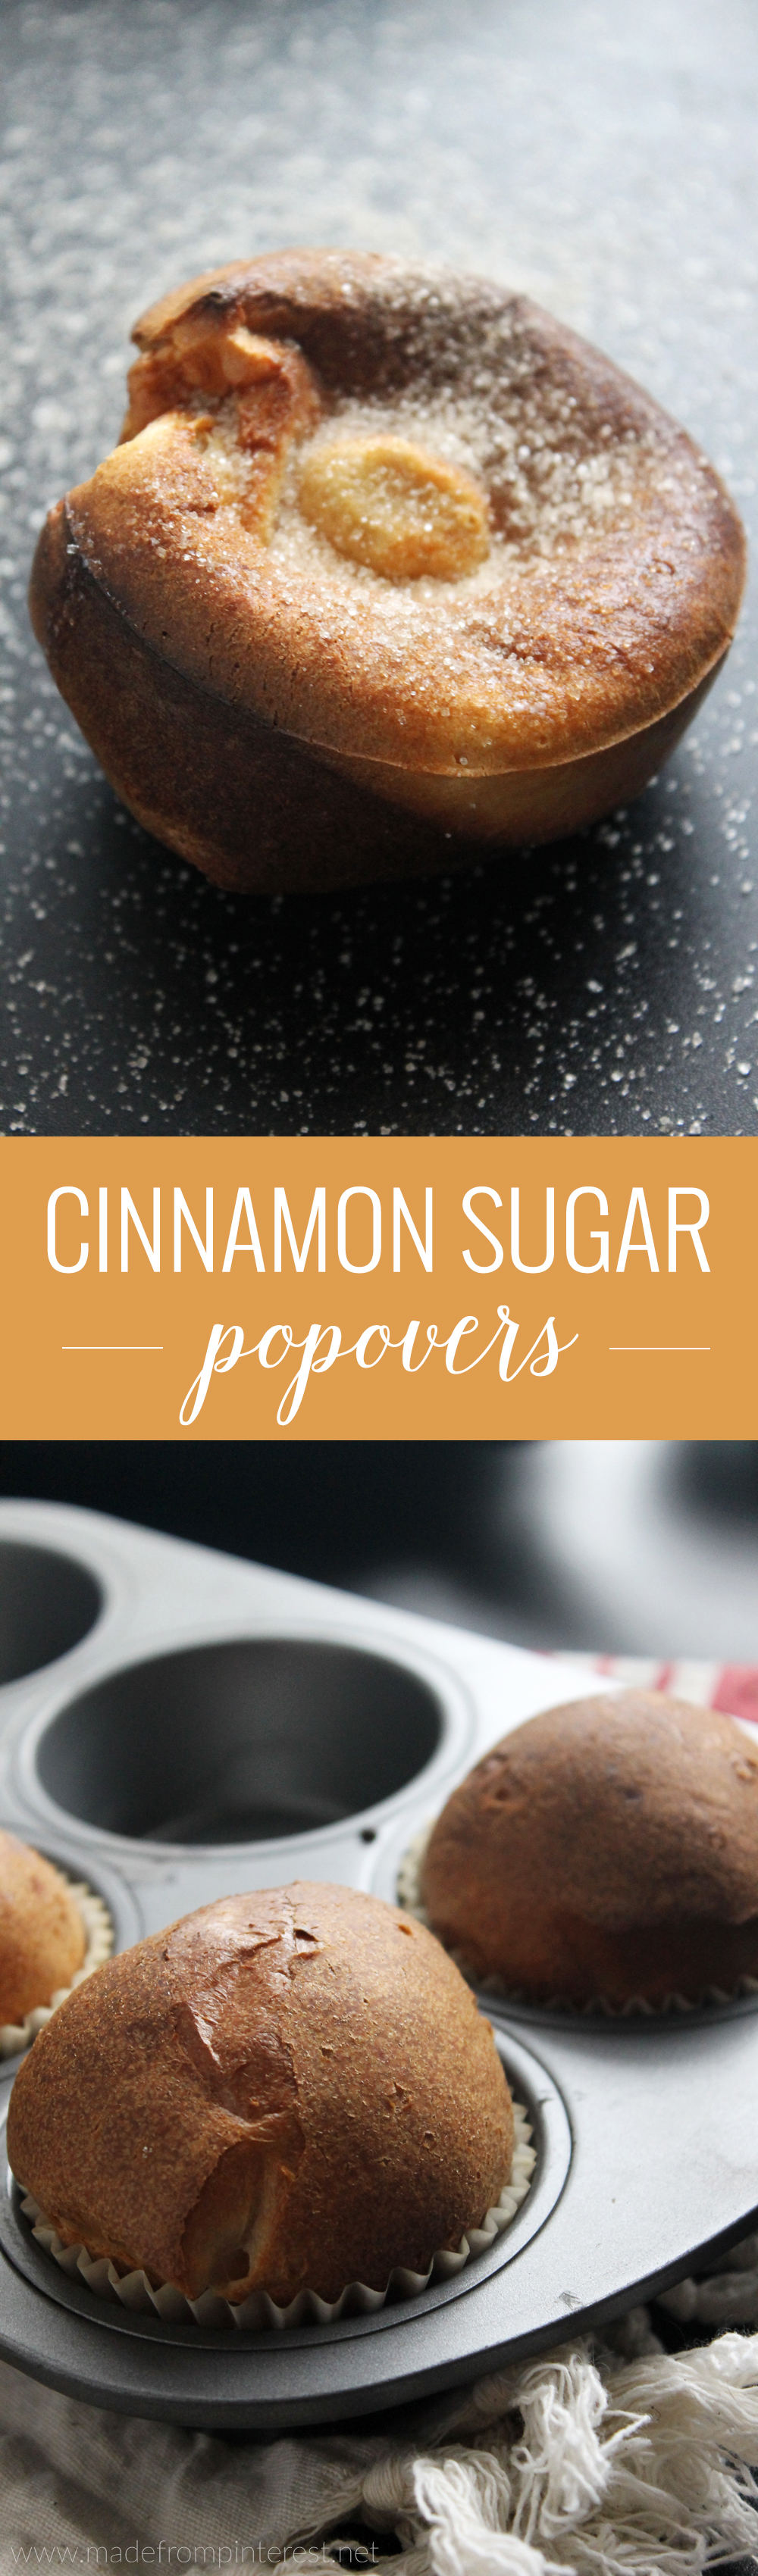 Cinnamon Sugar Popovers Tgif This Grandma Is Fun